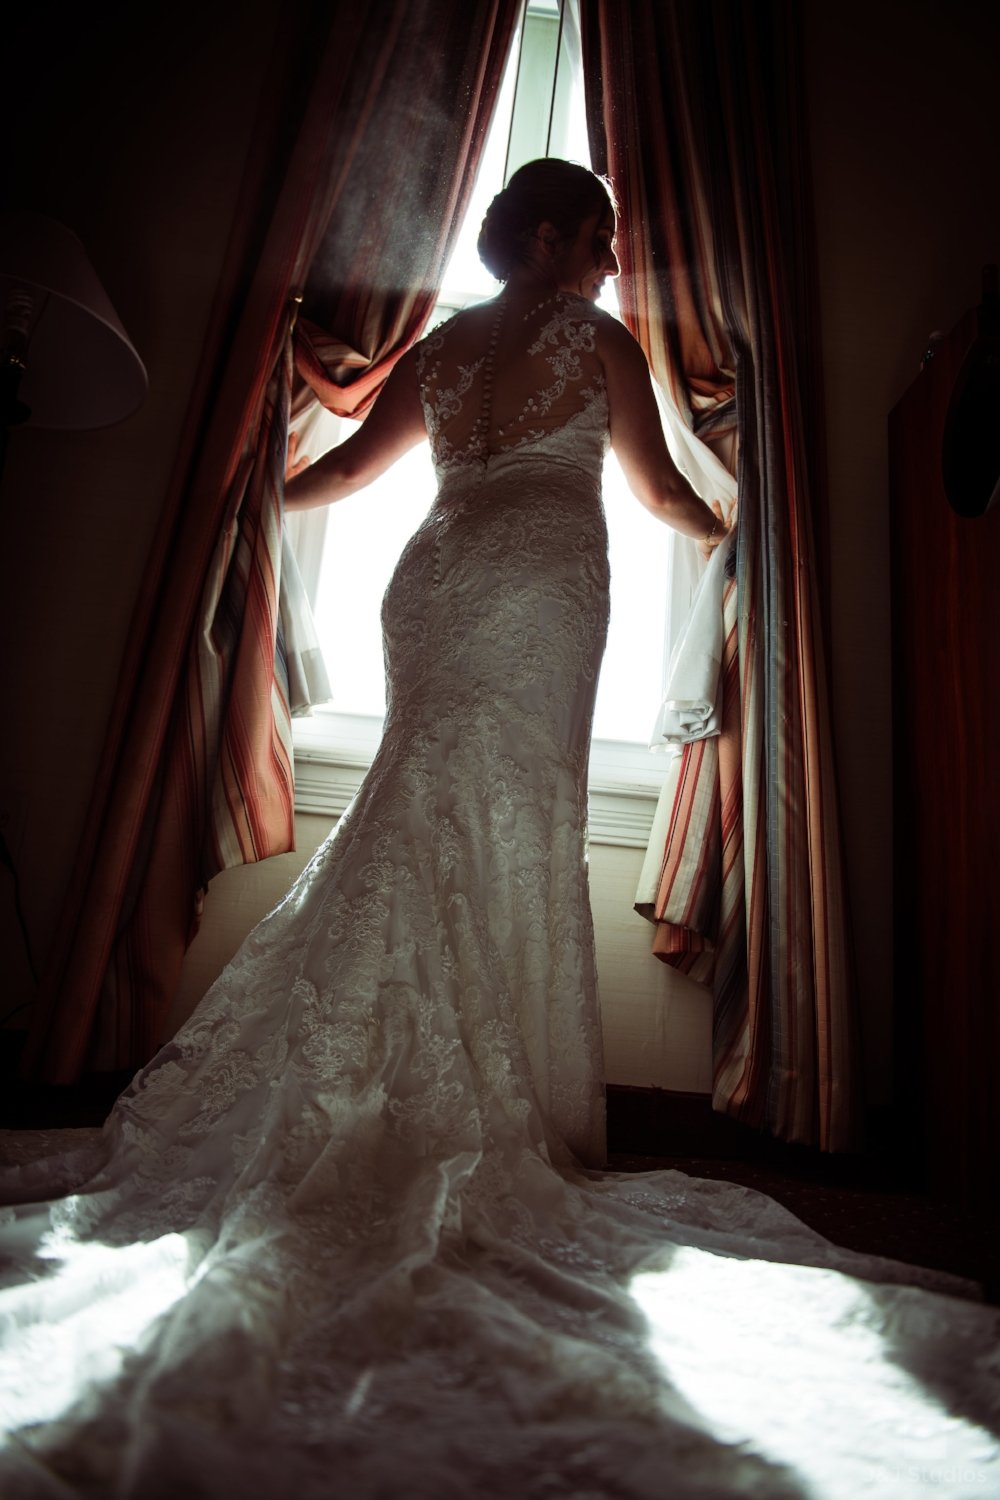 bride-opening-curtains-dramatic-shot